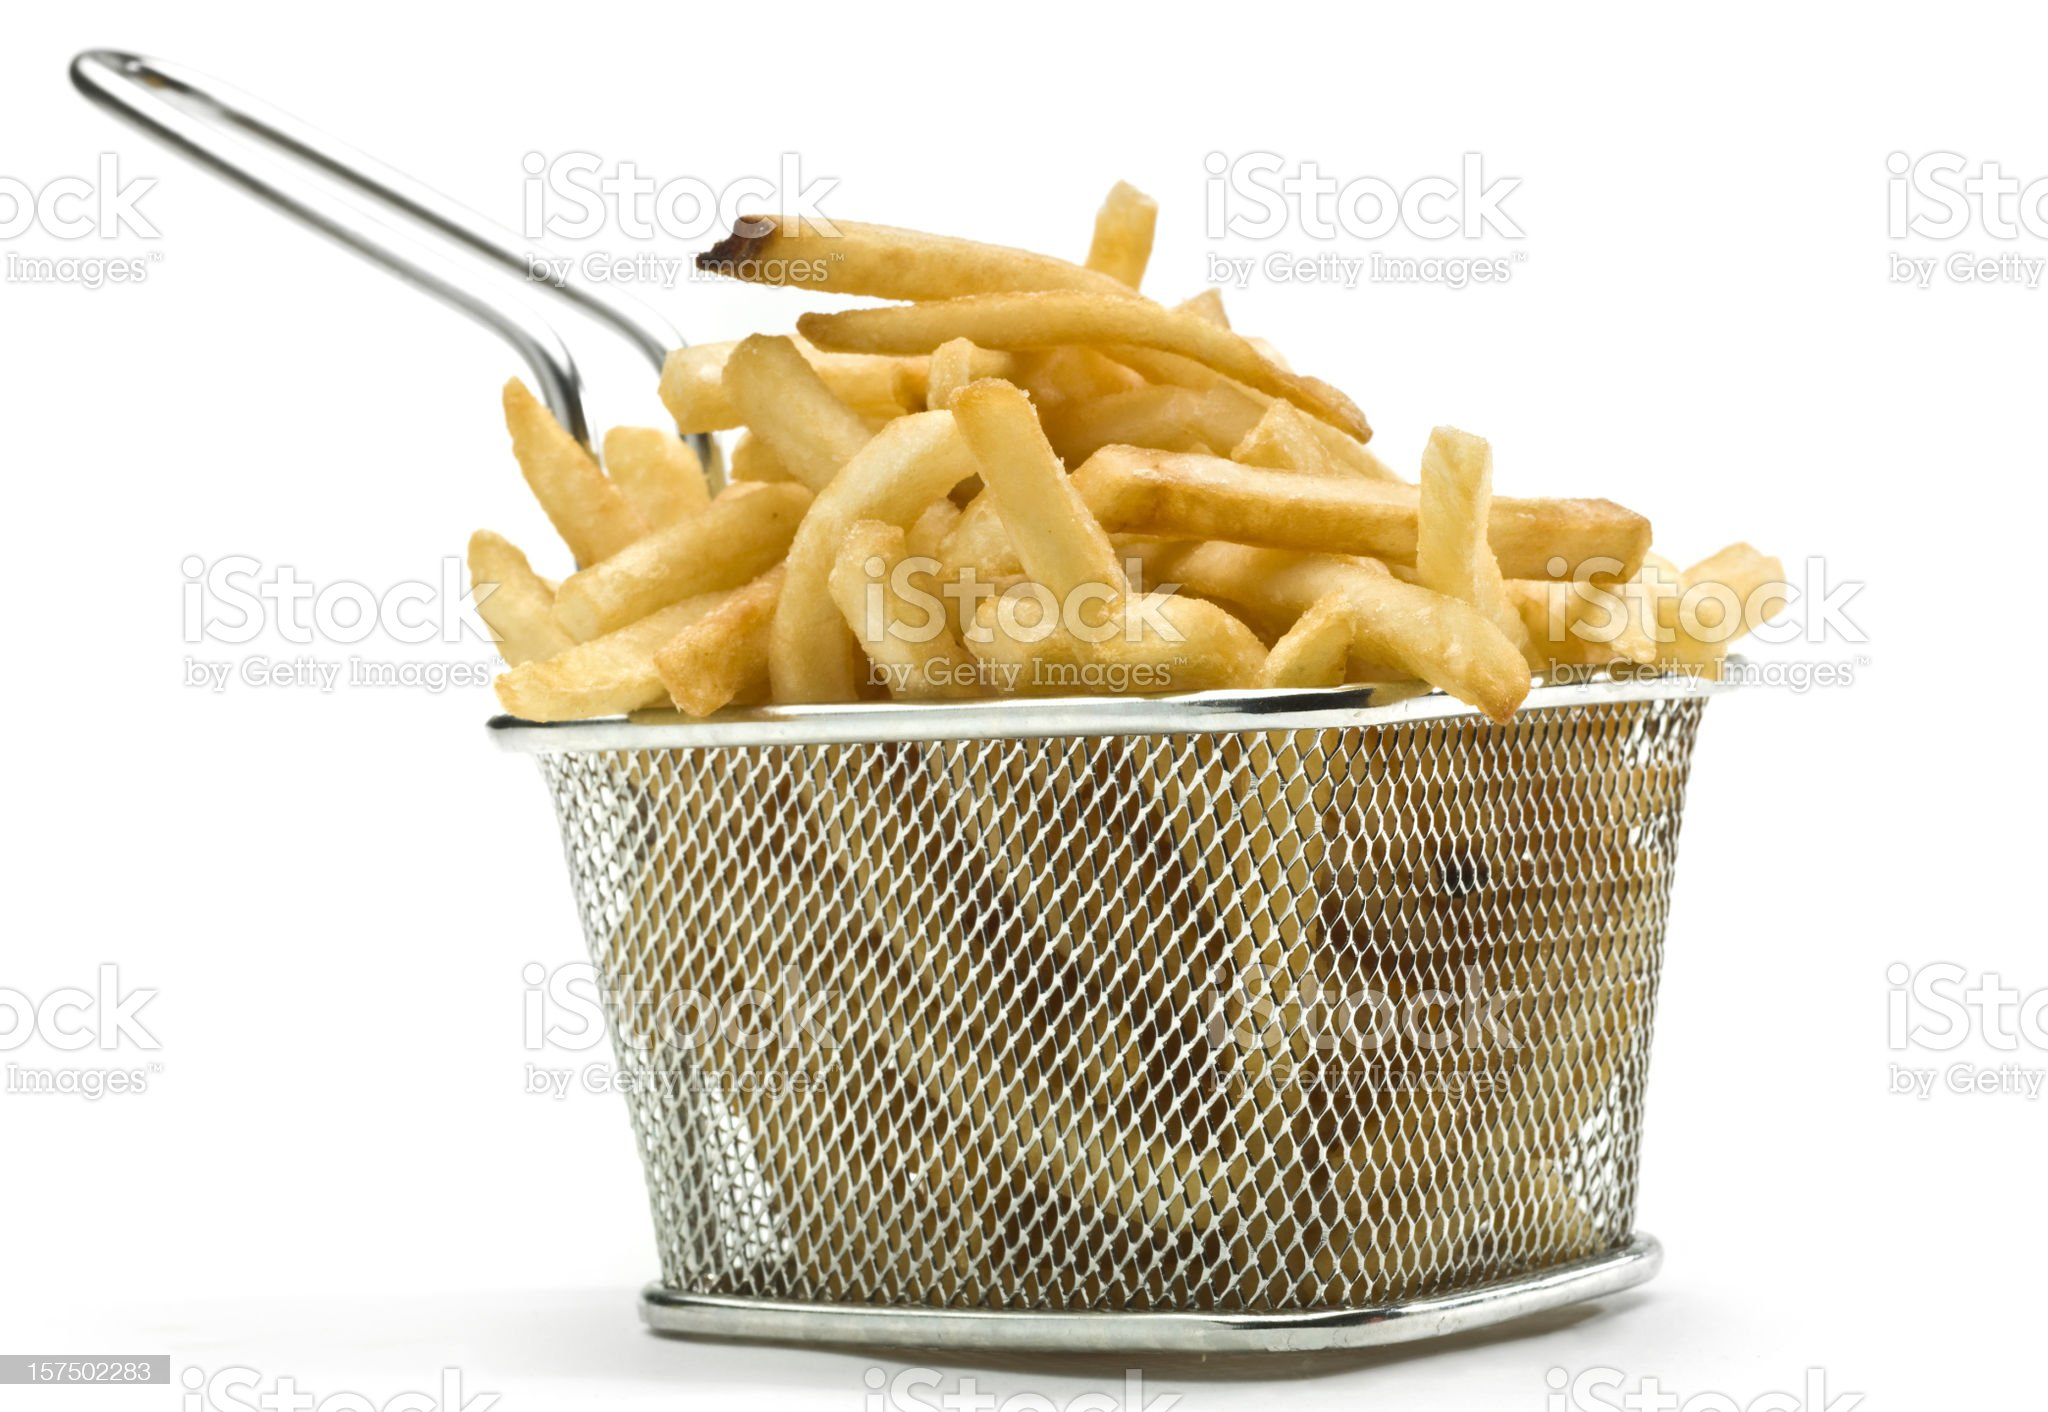 Fast food french fries royalty-free stock photo